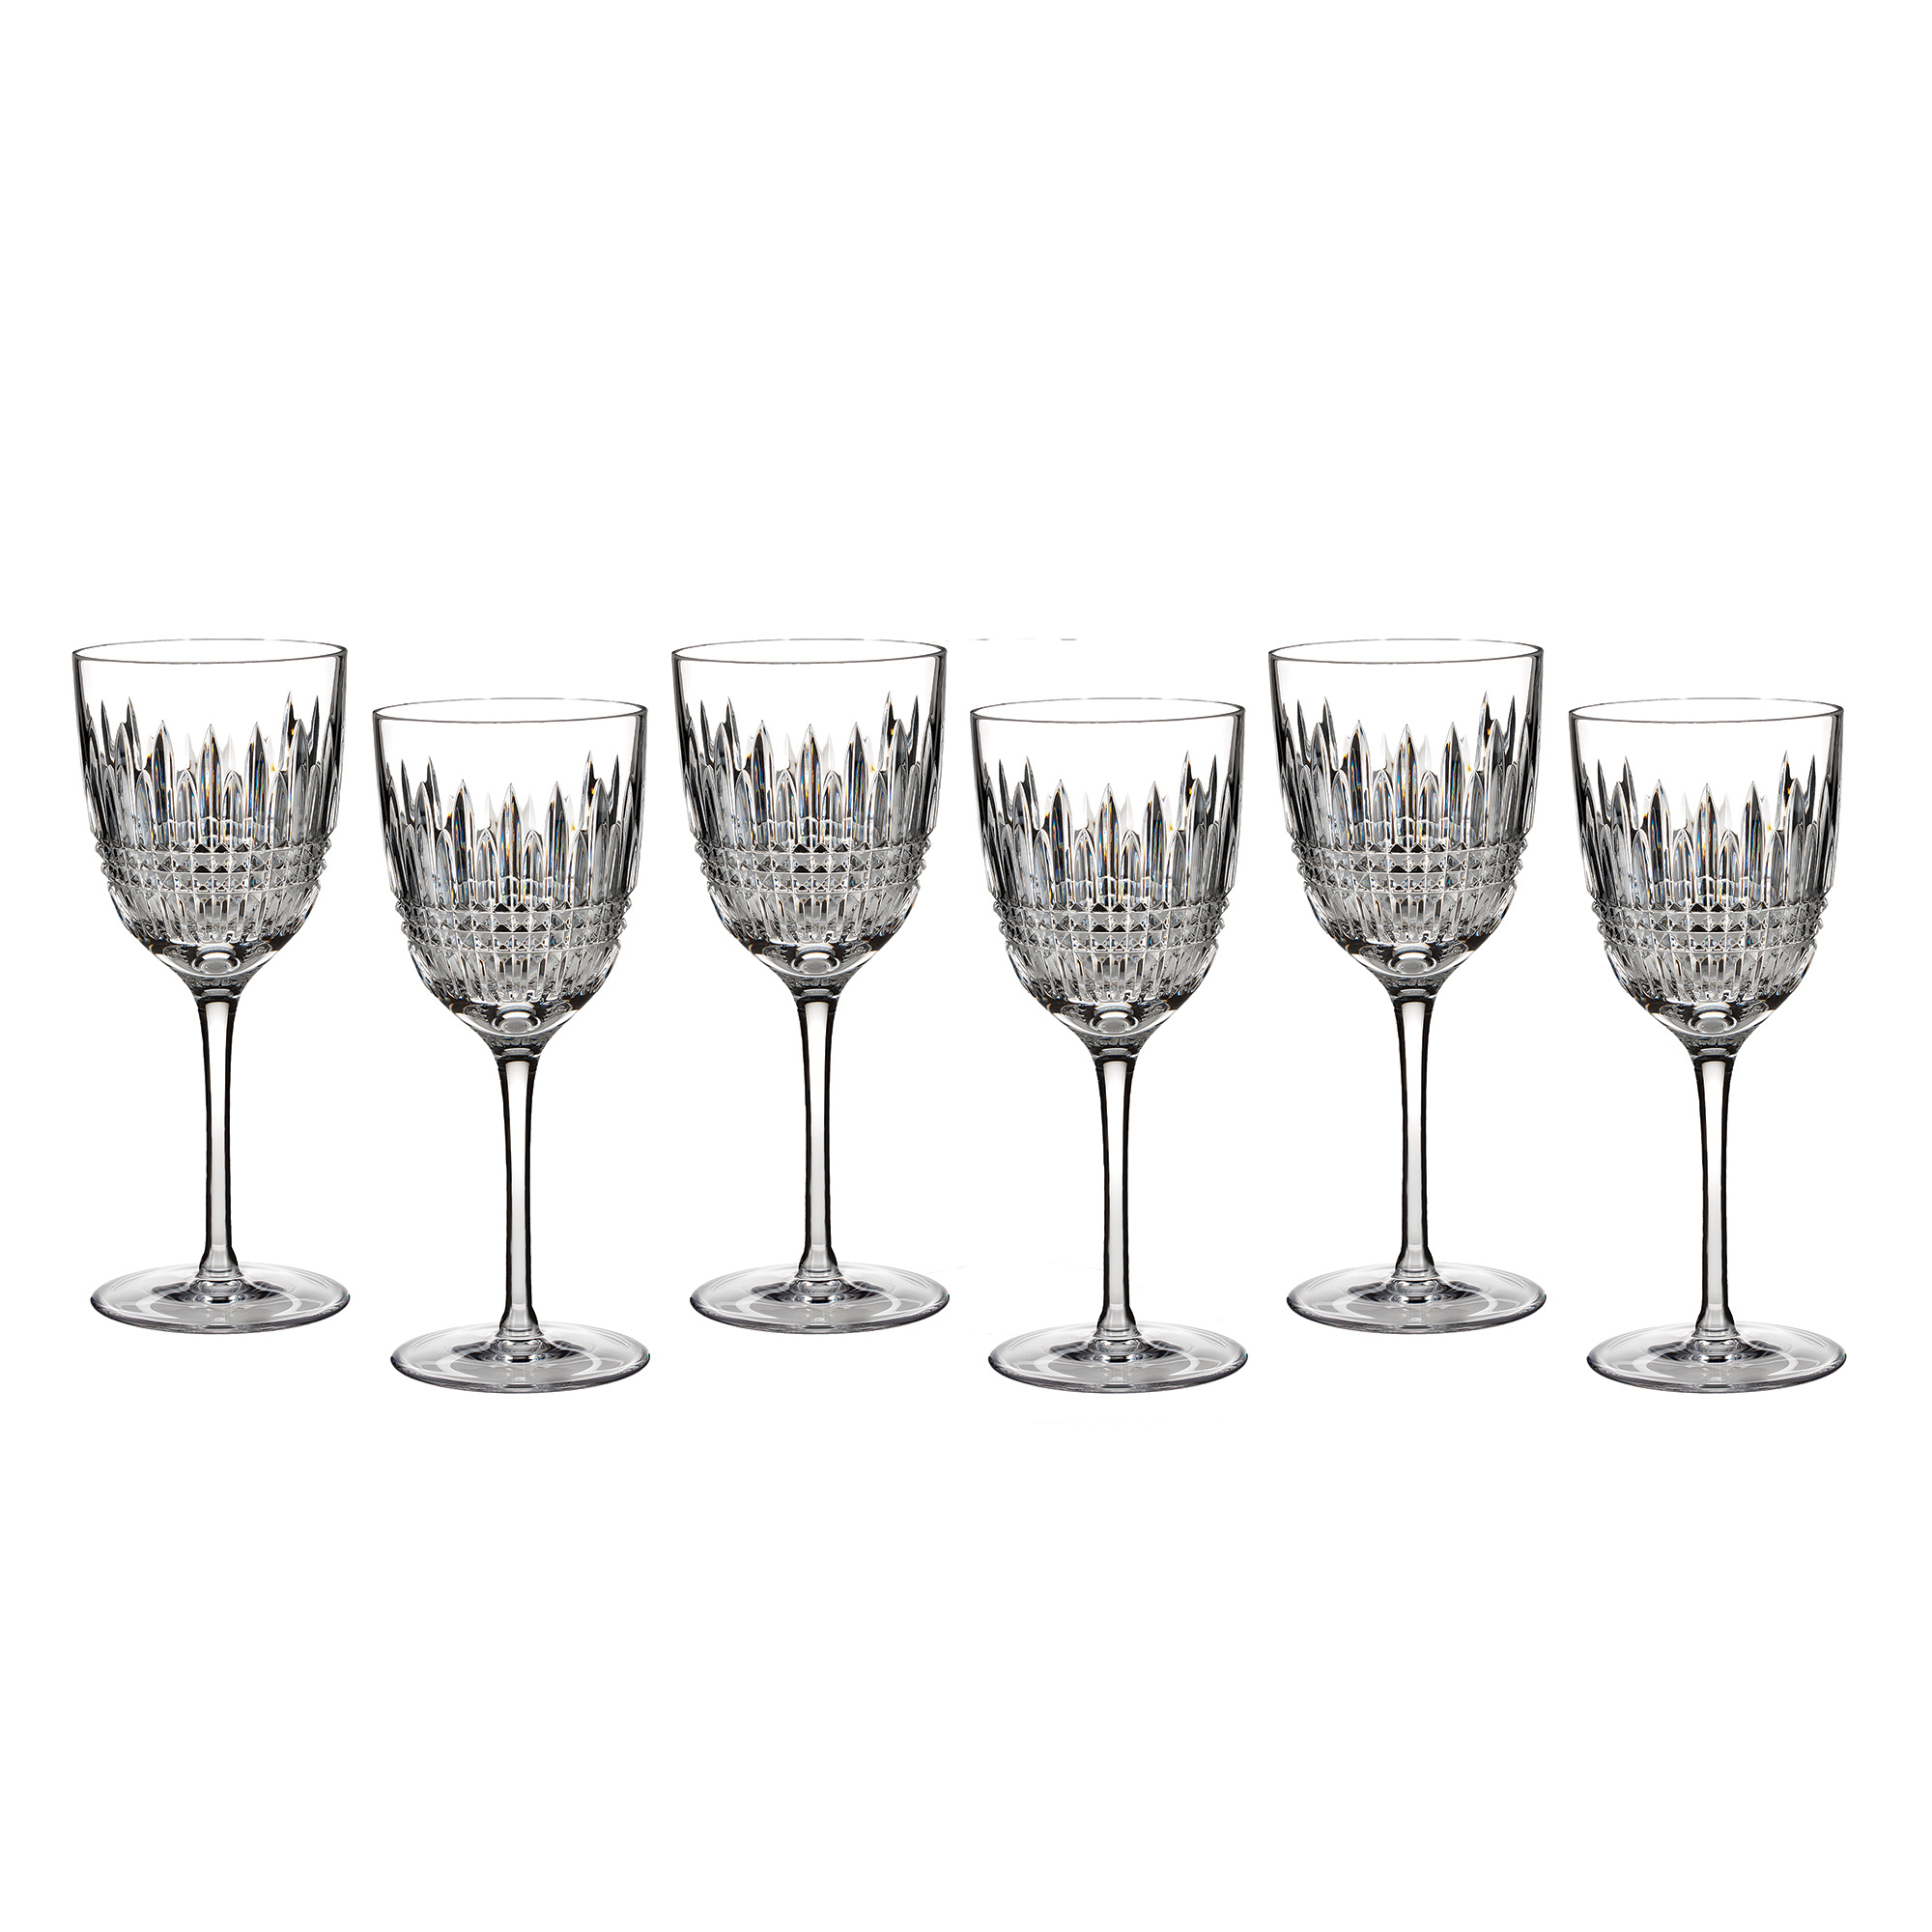 Waterford Lismore Diamond Goblets, Set of 6